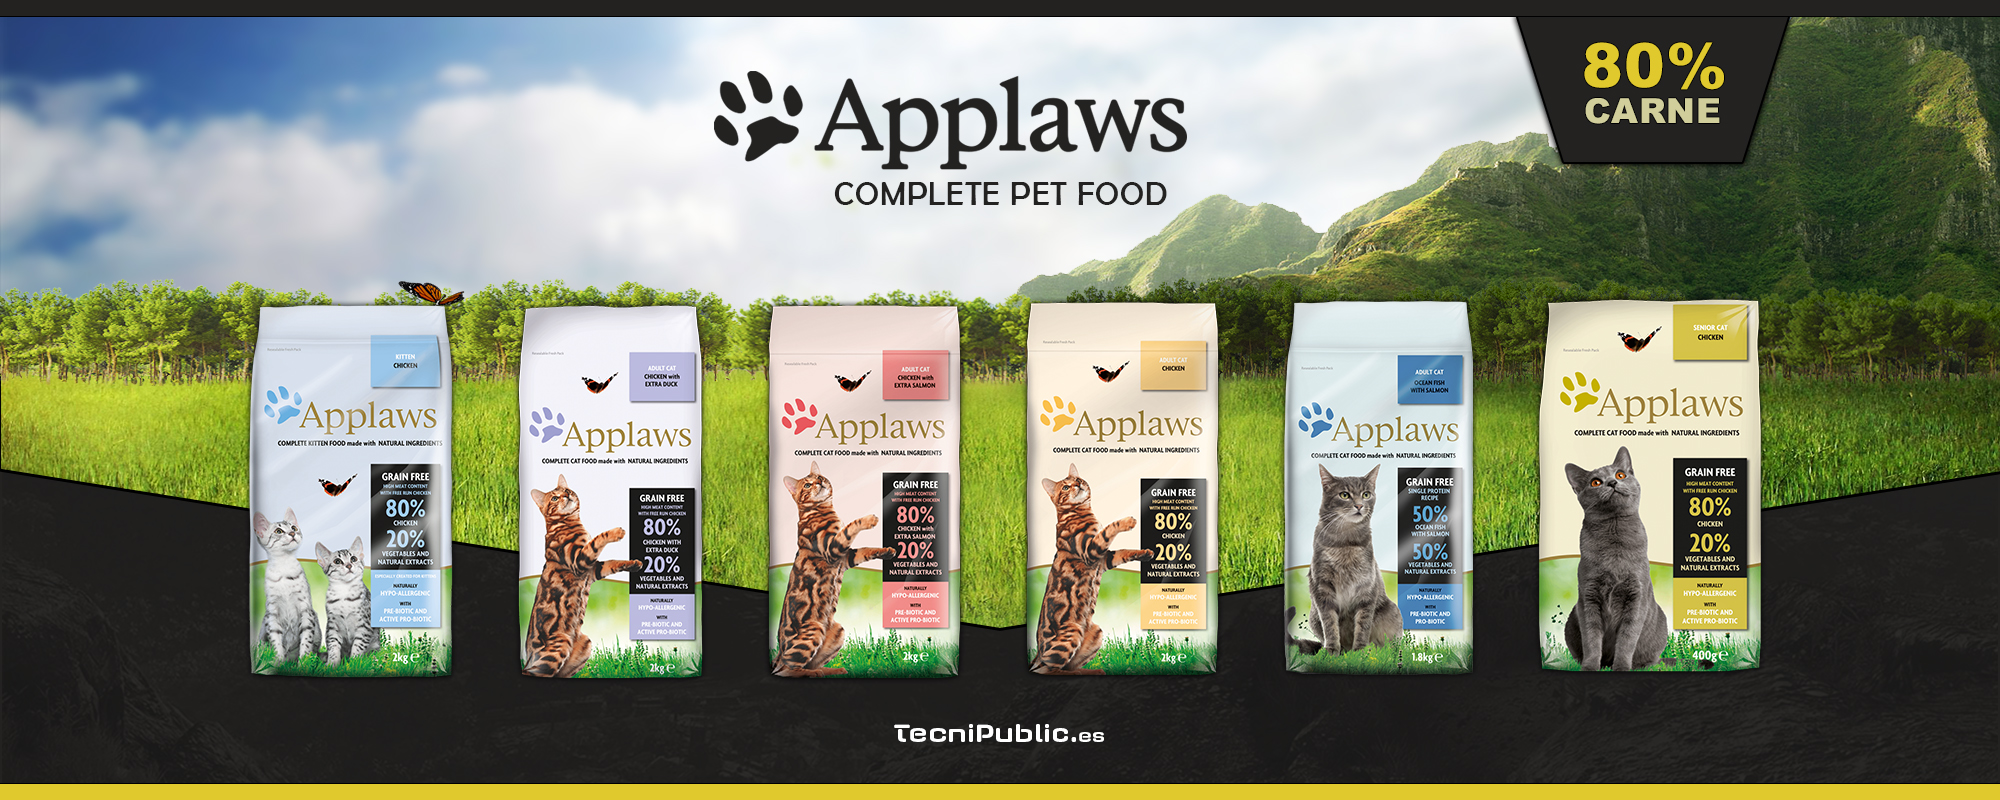 Applaws alimento con 80% de carne para gatos